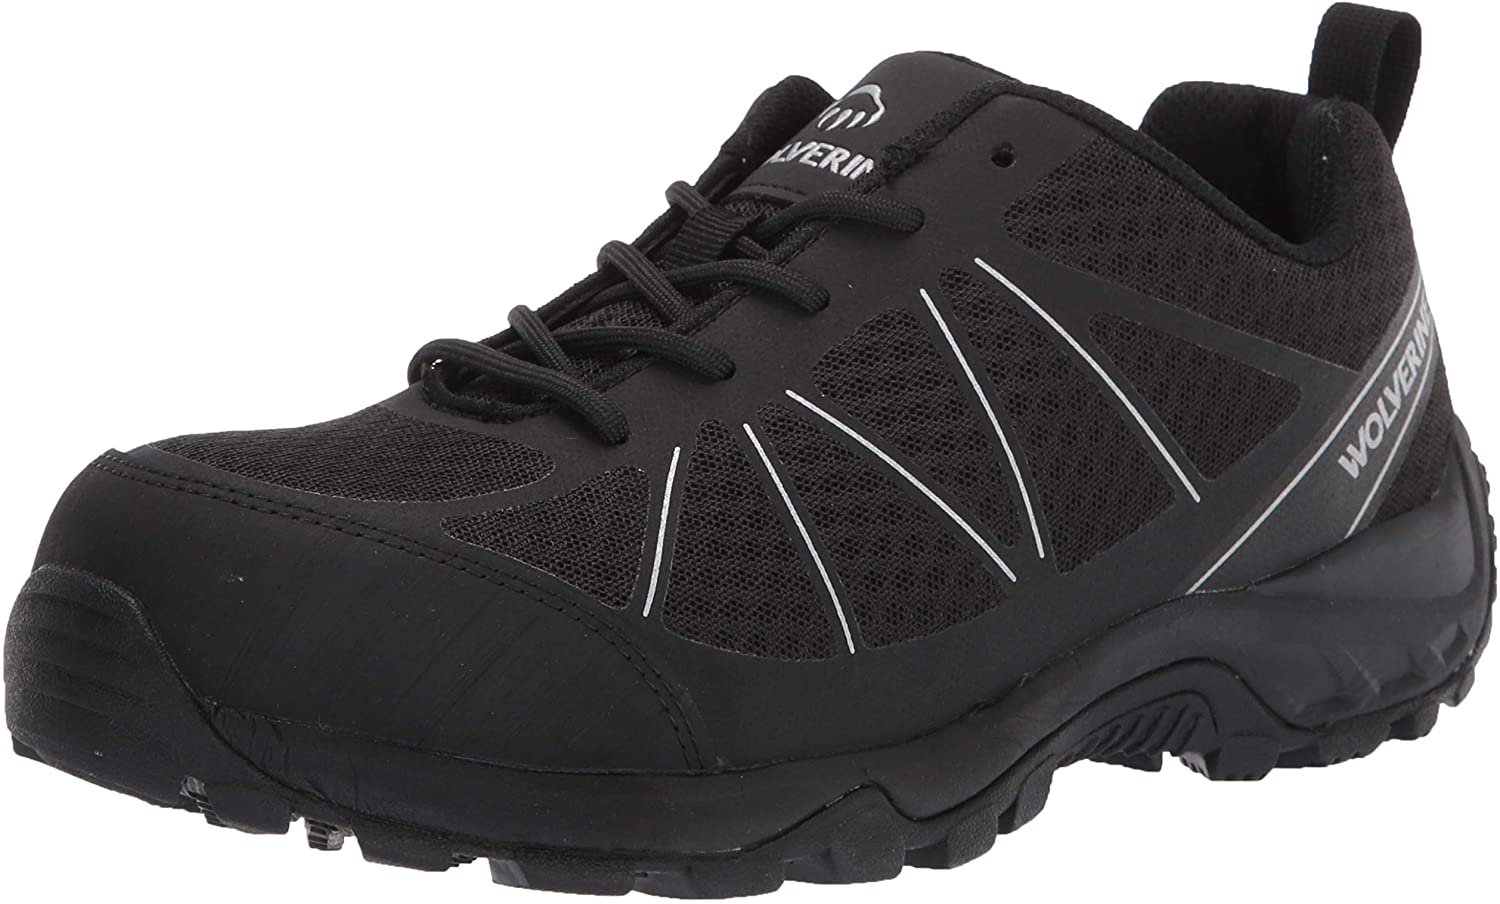 Wolverine Men's Amherst Ii Beauty products Max 44% OFF CarbonMax Industrial Work Boot Shoe